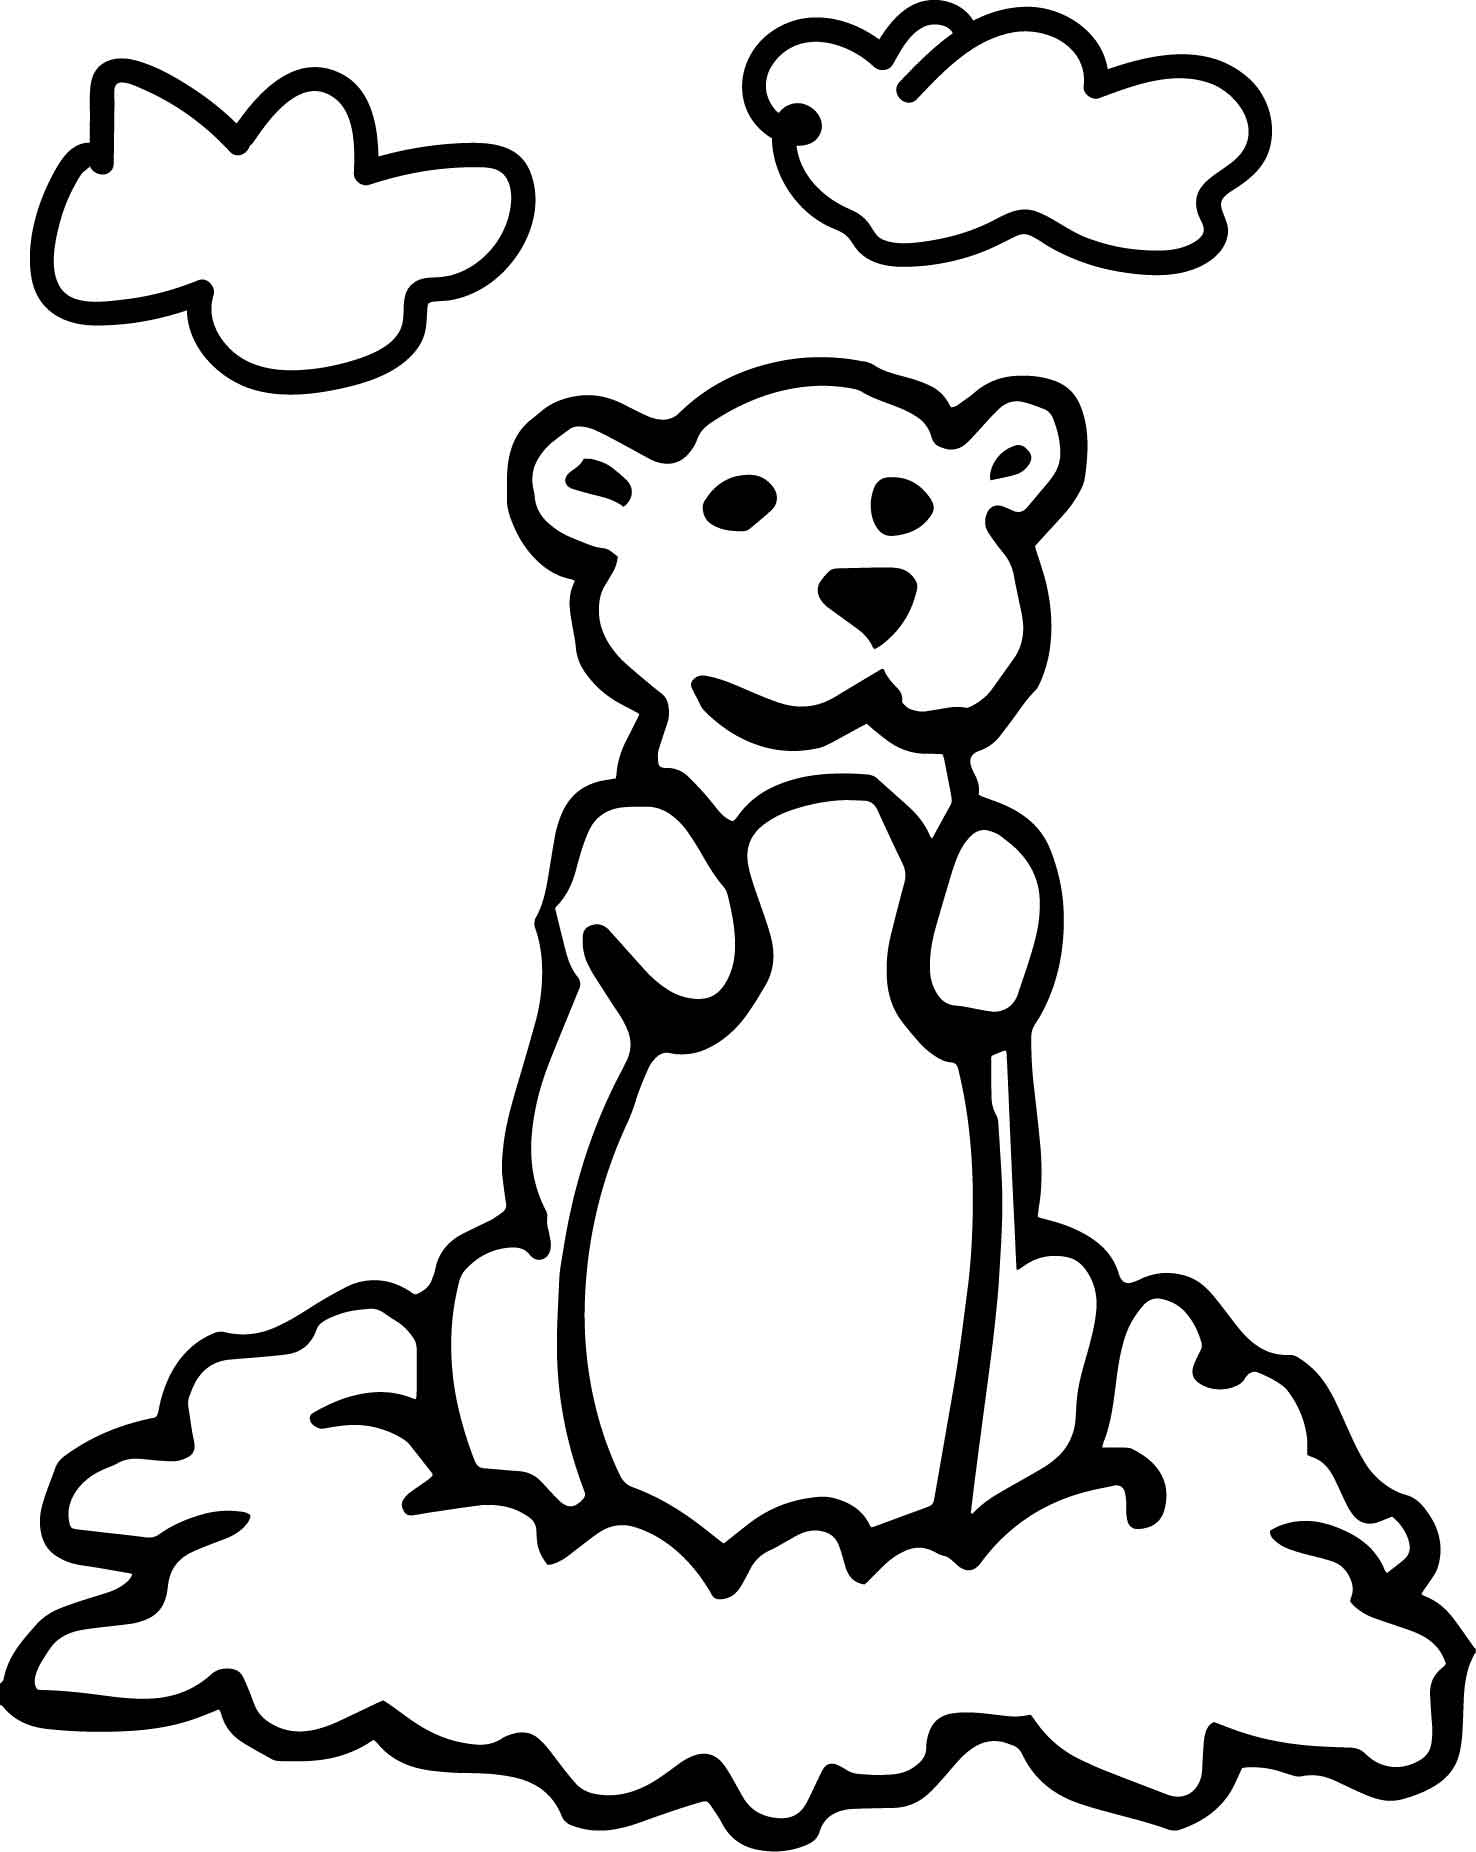 Basic Cartoon Groundhog Day Coloring Page